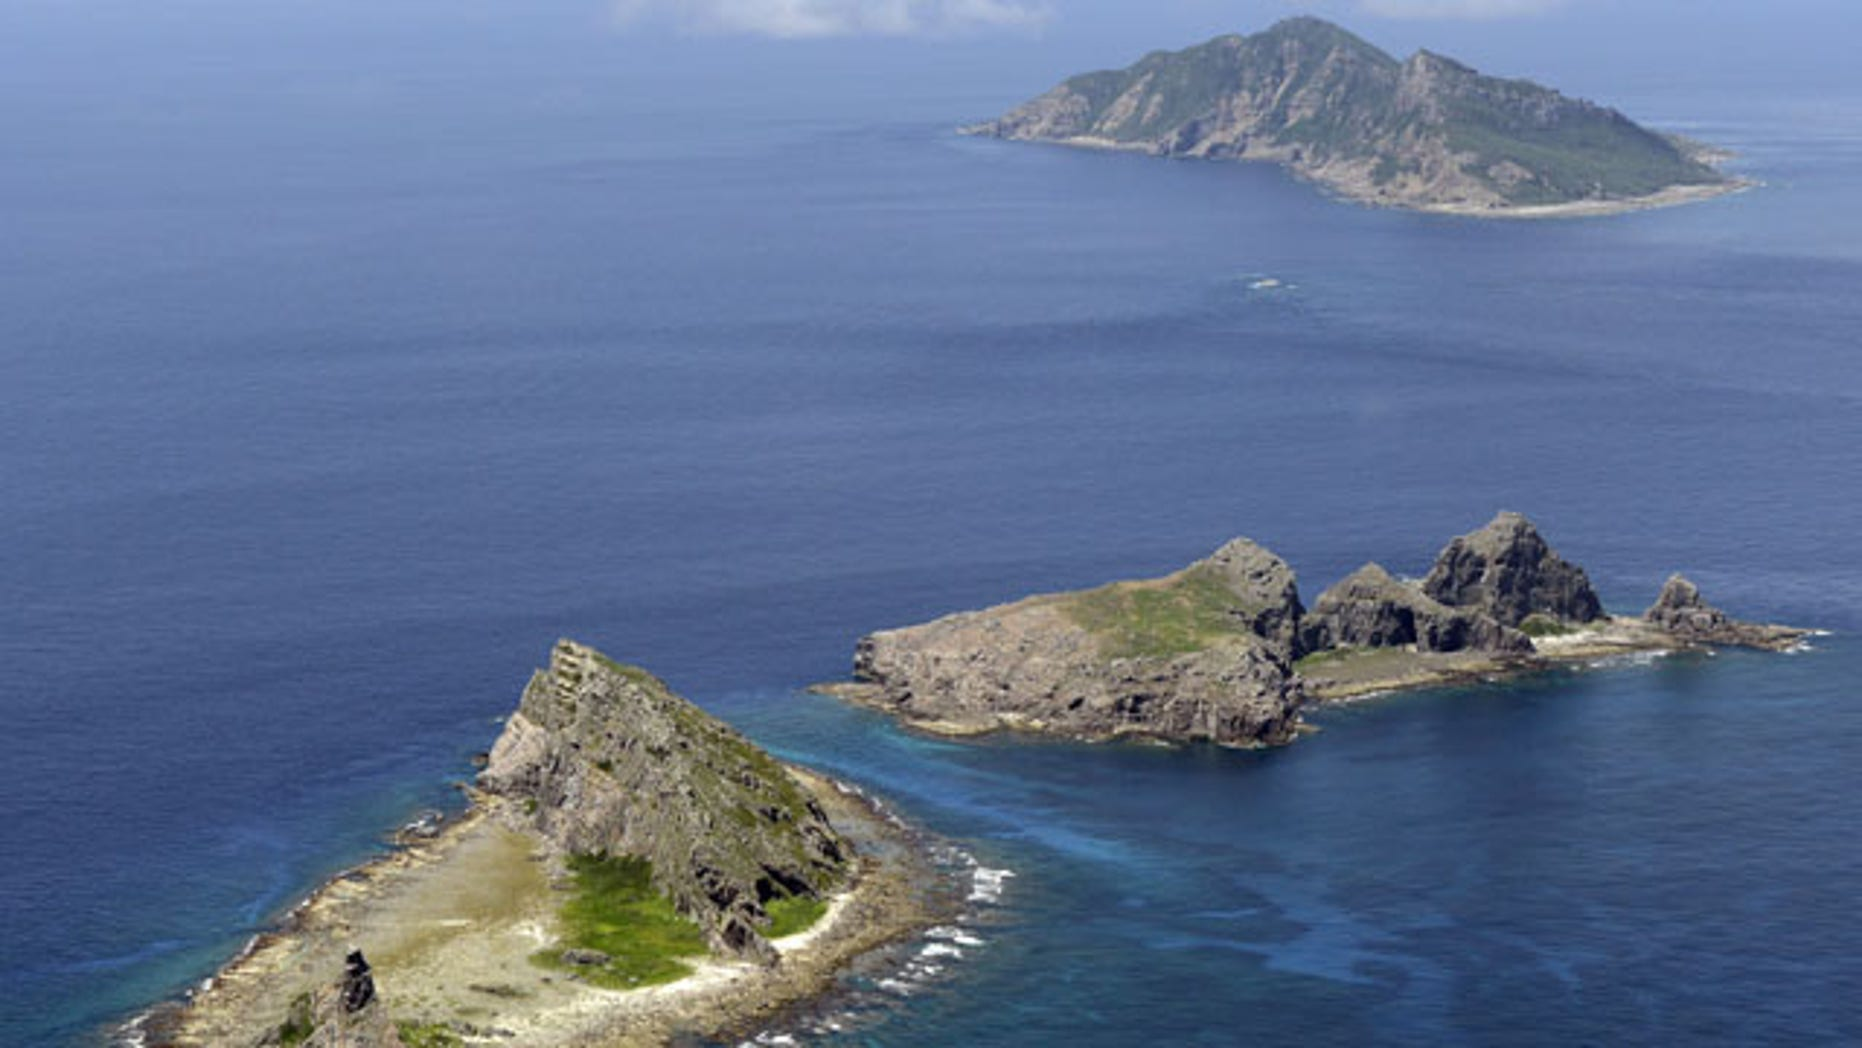 In this Sept. 2012 photo, the tiny islands in the East China Sea, called Senkaku in Japanese and Diaoyu in Chinese are seen. The Chinese Defense Ministry on Saturday, Nov. 23, 2013, issued a map of an East China Sea Air Defense Identification Zone that includes a chain of disputed islands also claimed by Japan, triggering a protest from Tokyo. (AP Photo/Kyodo News)